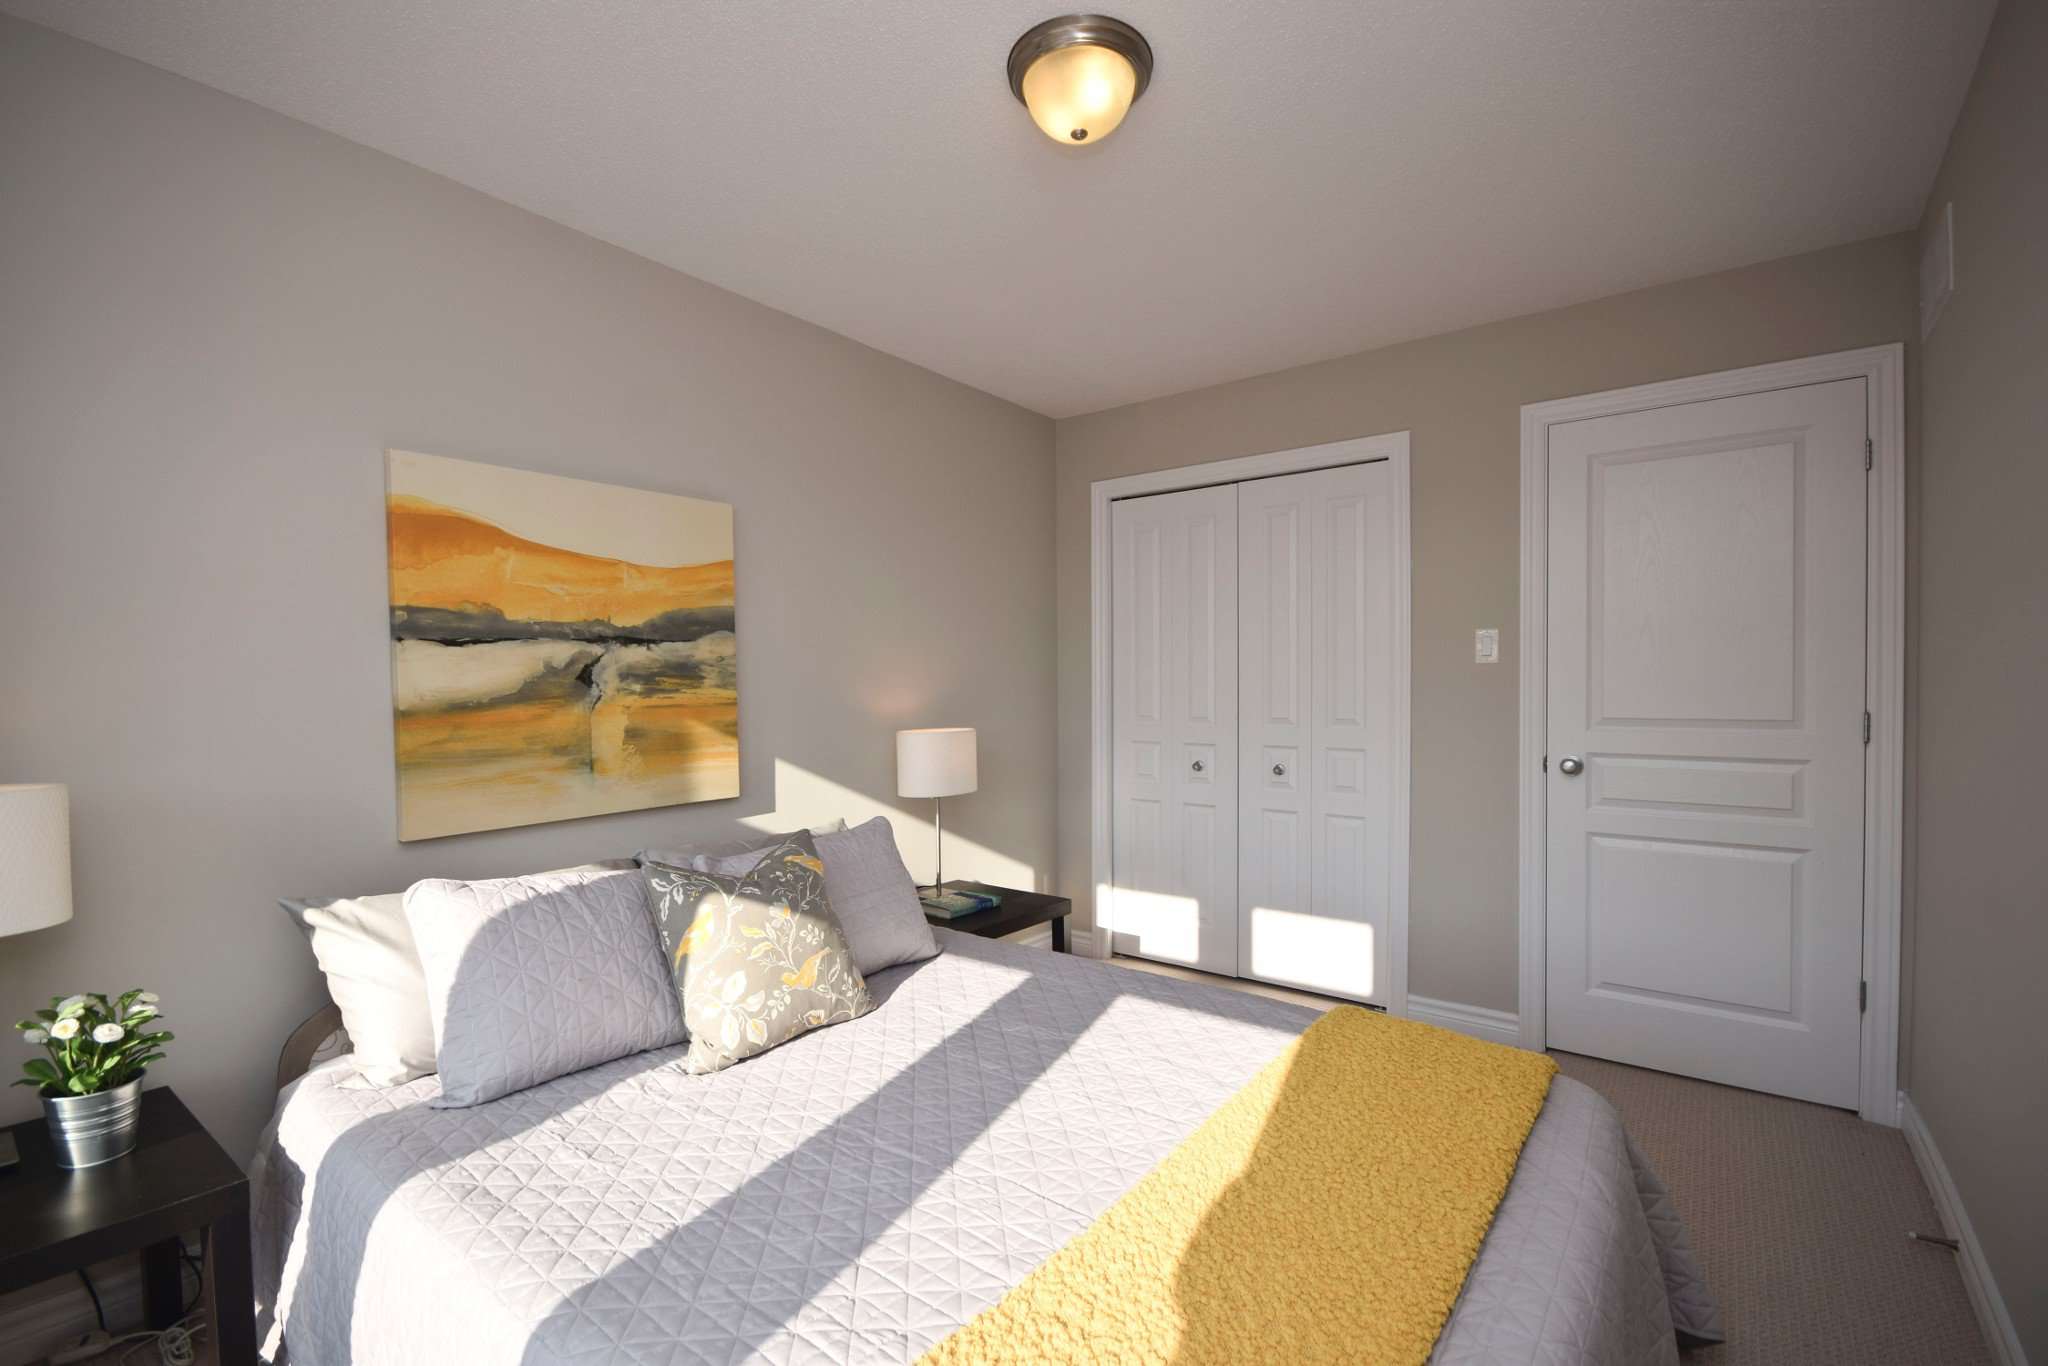 Photo 51: Photos: 131 Popplewell Crescent in Ottawa: Cedargrove / Fraserdale House for sale (Barrhaven)  : MLS®# 1130335